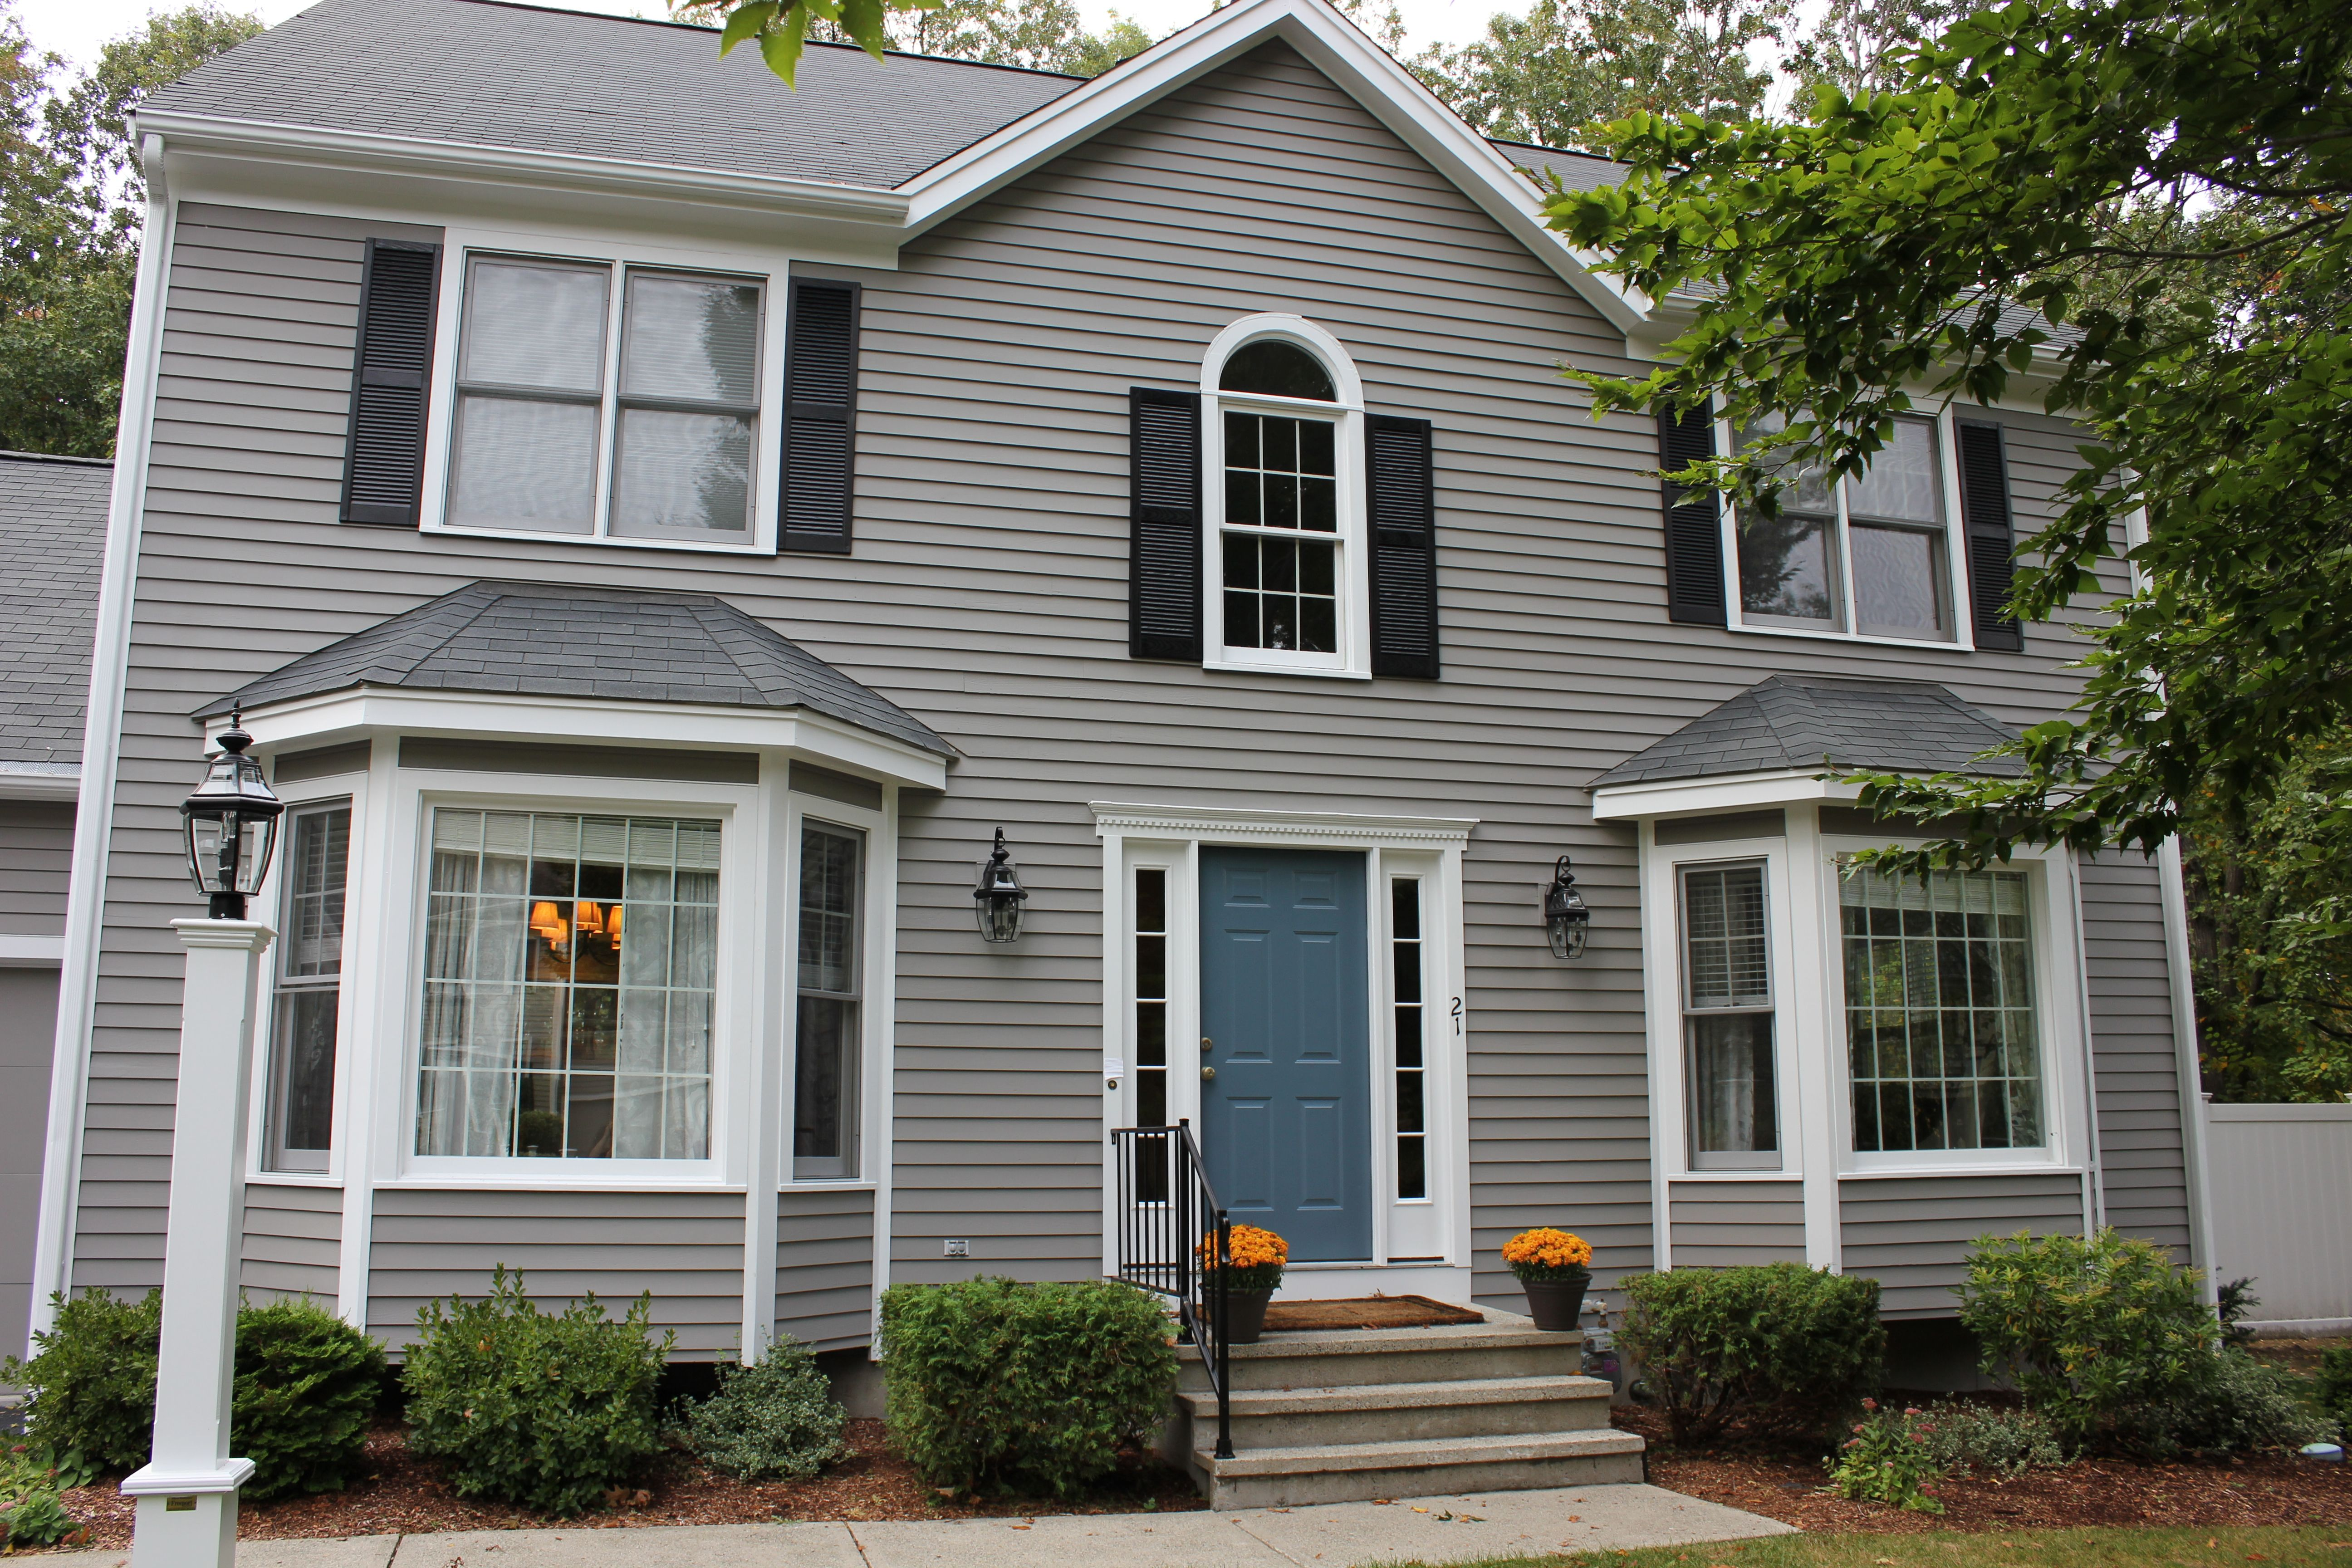 New Paint Exterior Siding Is Benjamin Moore Graystone